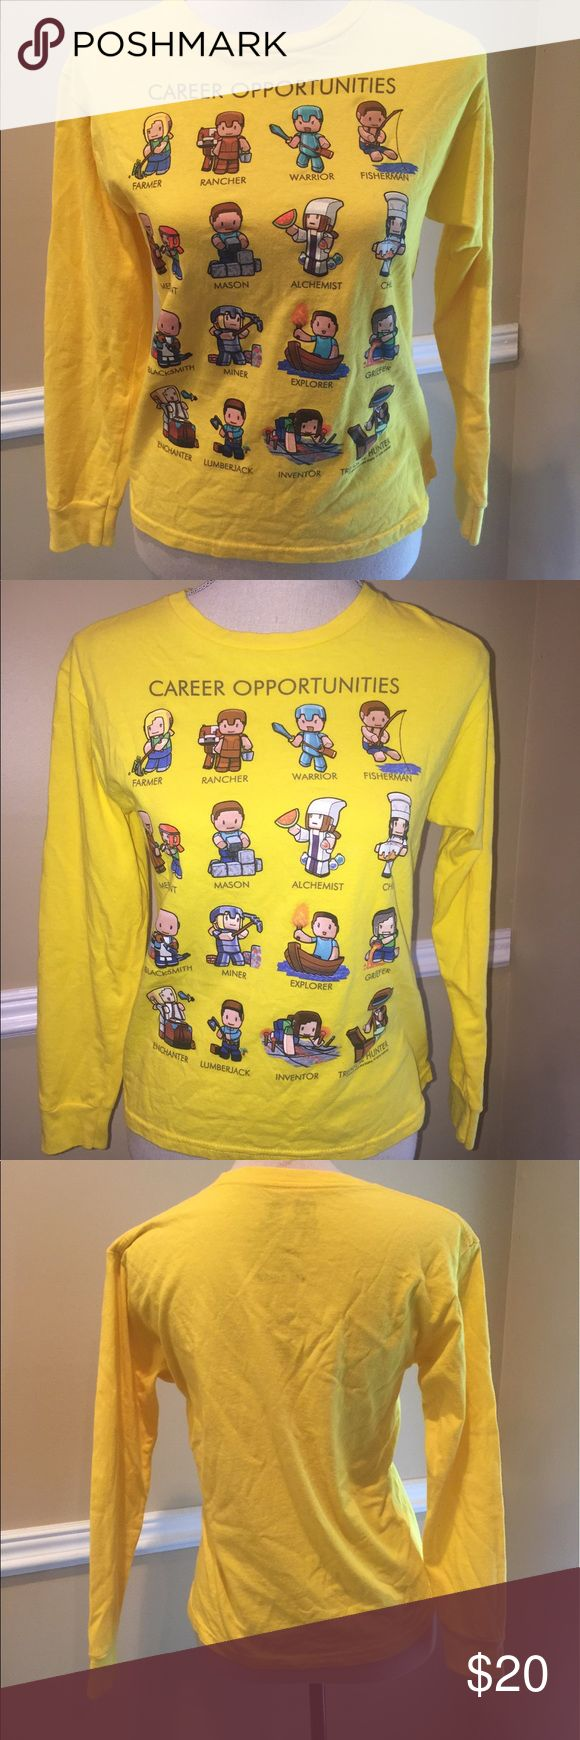 Authentic Minecraft Youth Kids 10-12 EXCELLENT CONDITION!!!!!!! Yellow long sleeve t shirt New without tags. Career opportunities.🎈Make an offer 🎈accepts most offers. Shirts & Tops Tees - Long Sleeve